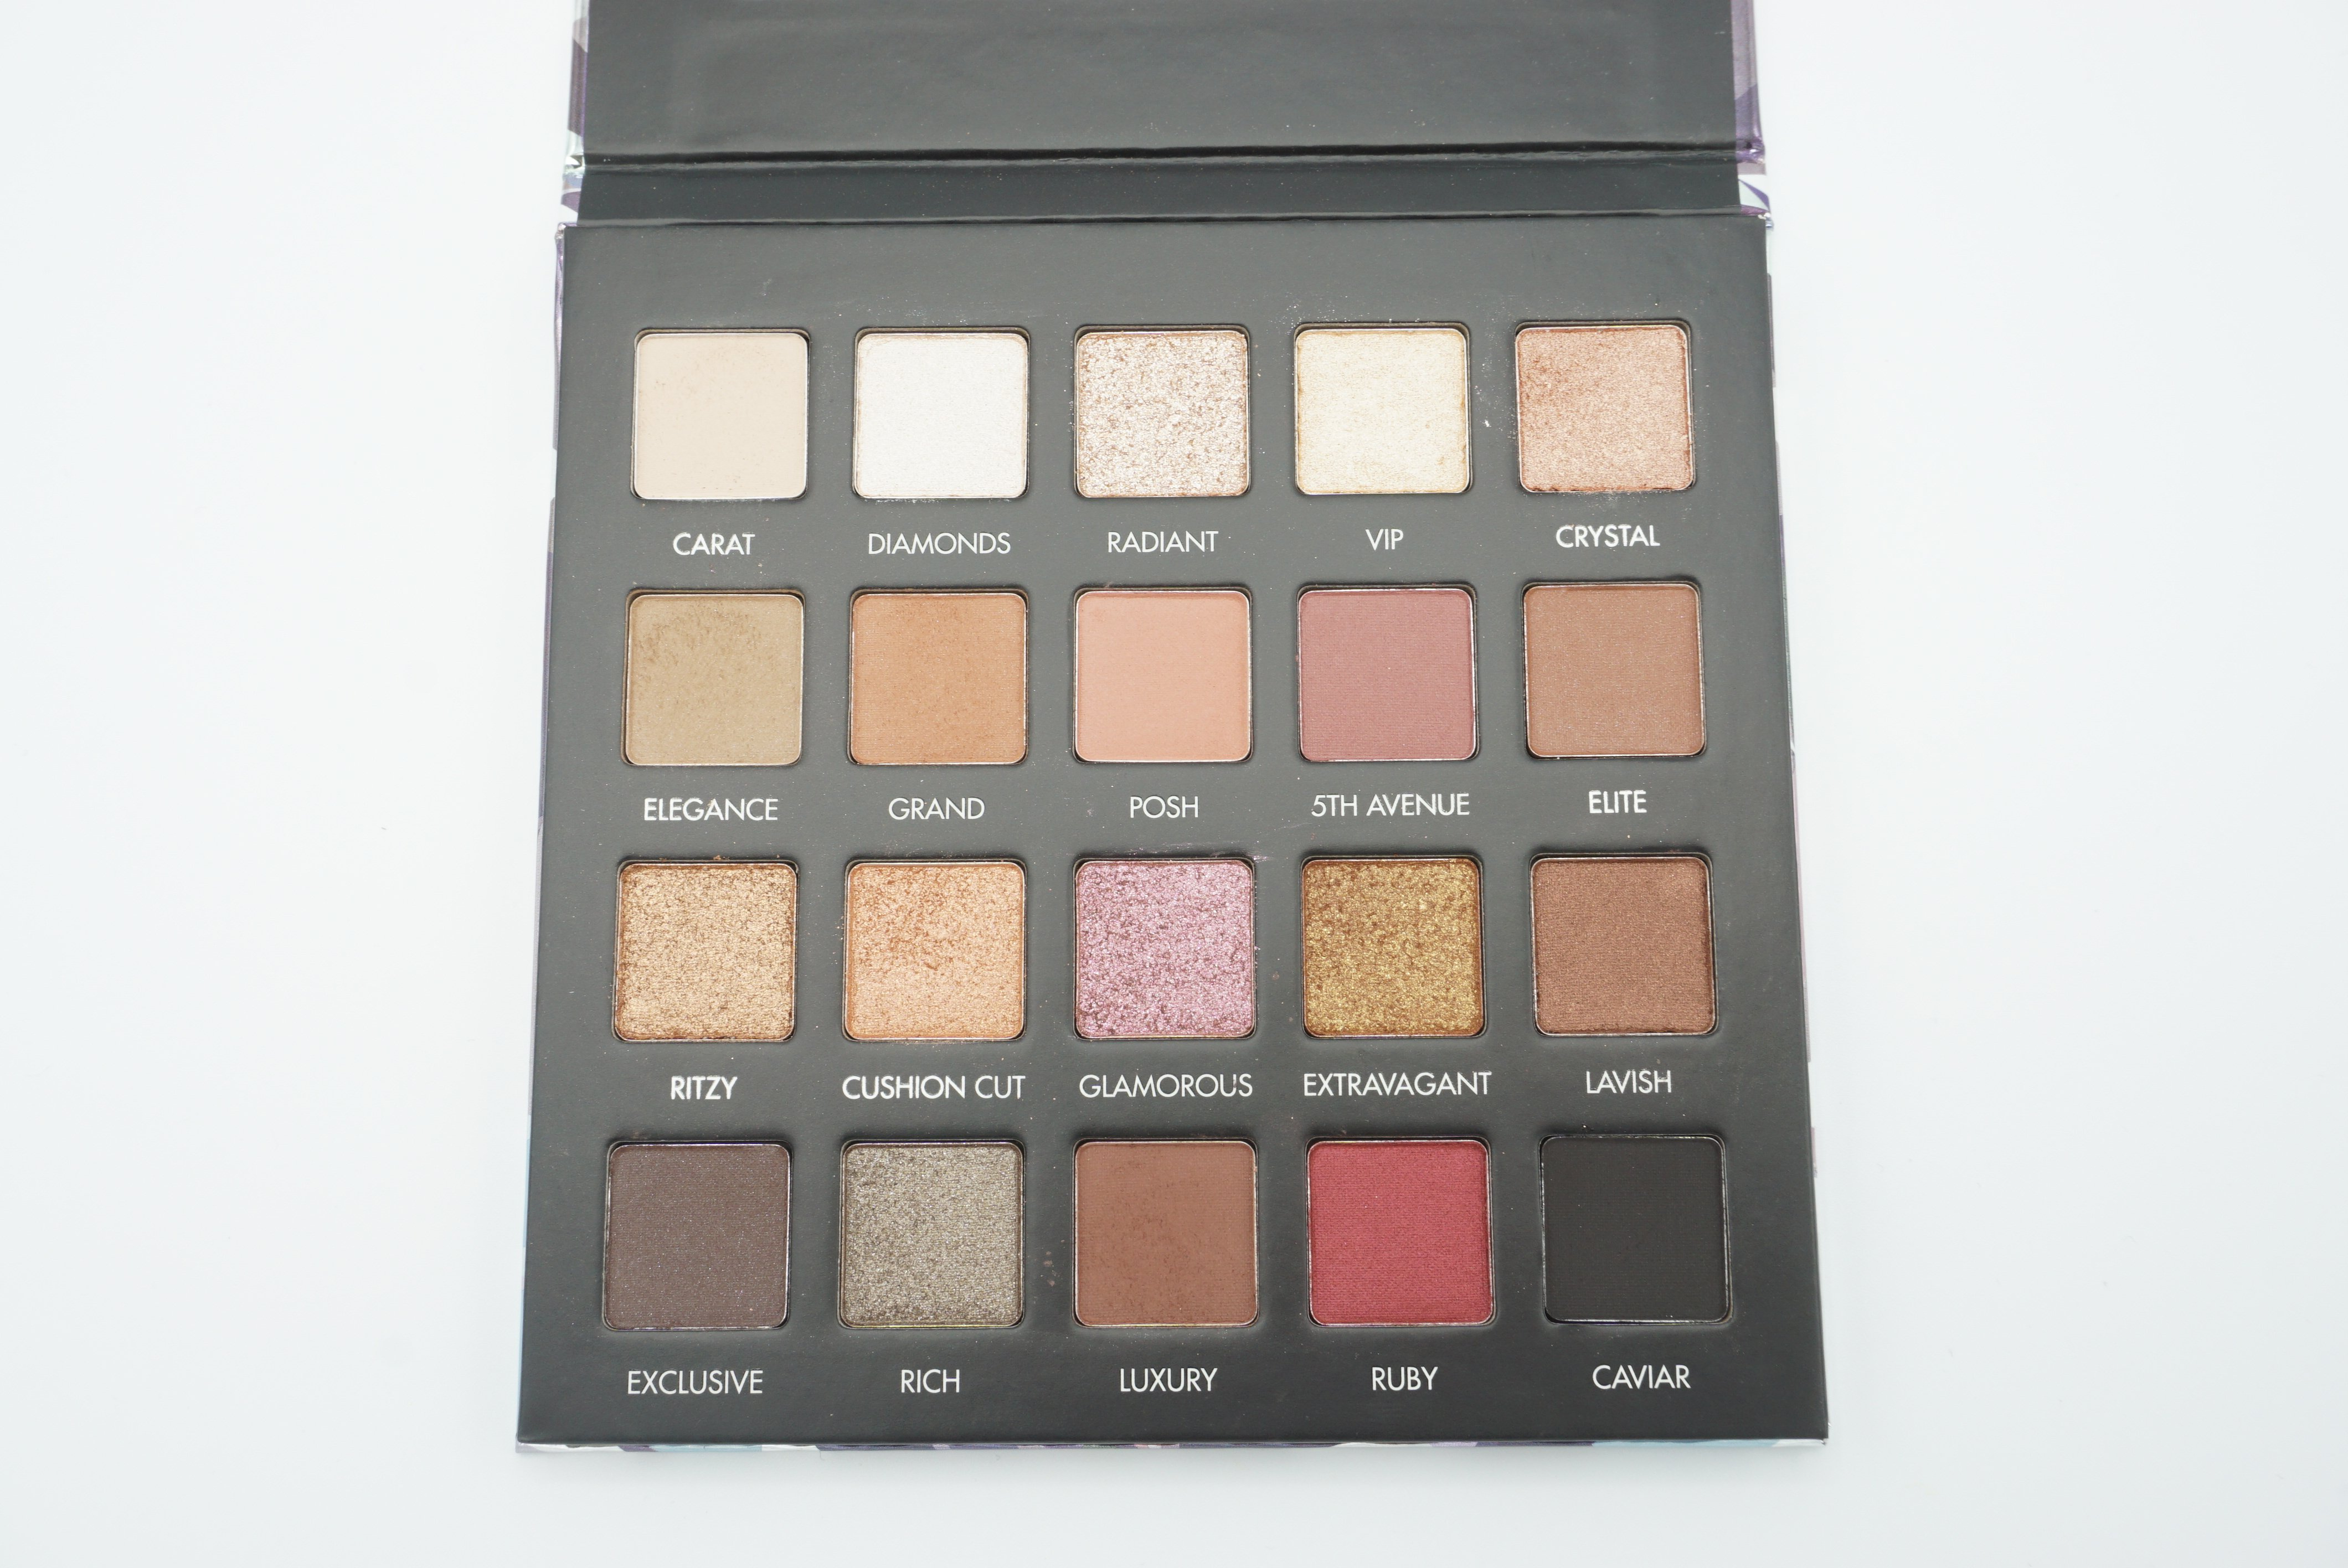 Lorac Cosmetics Lux Diamond Palette Review and Swatches